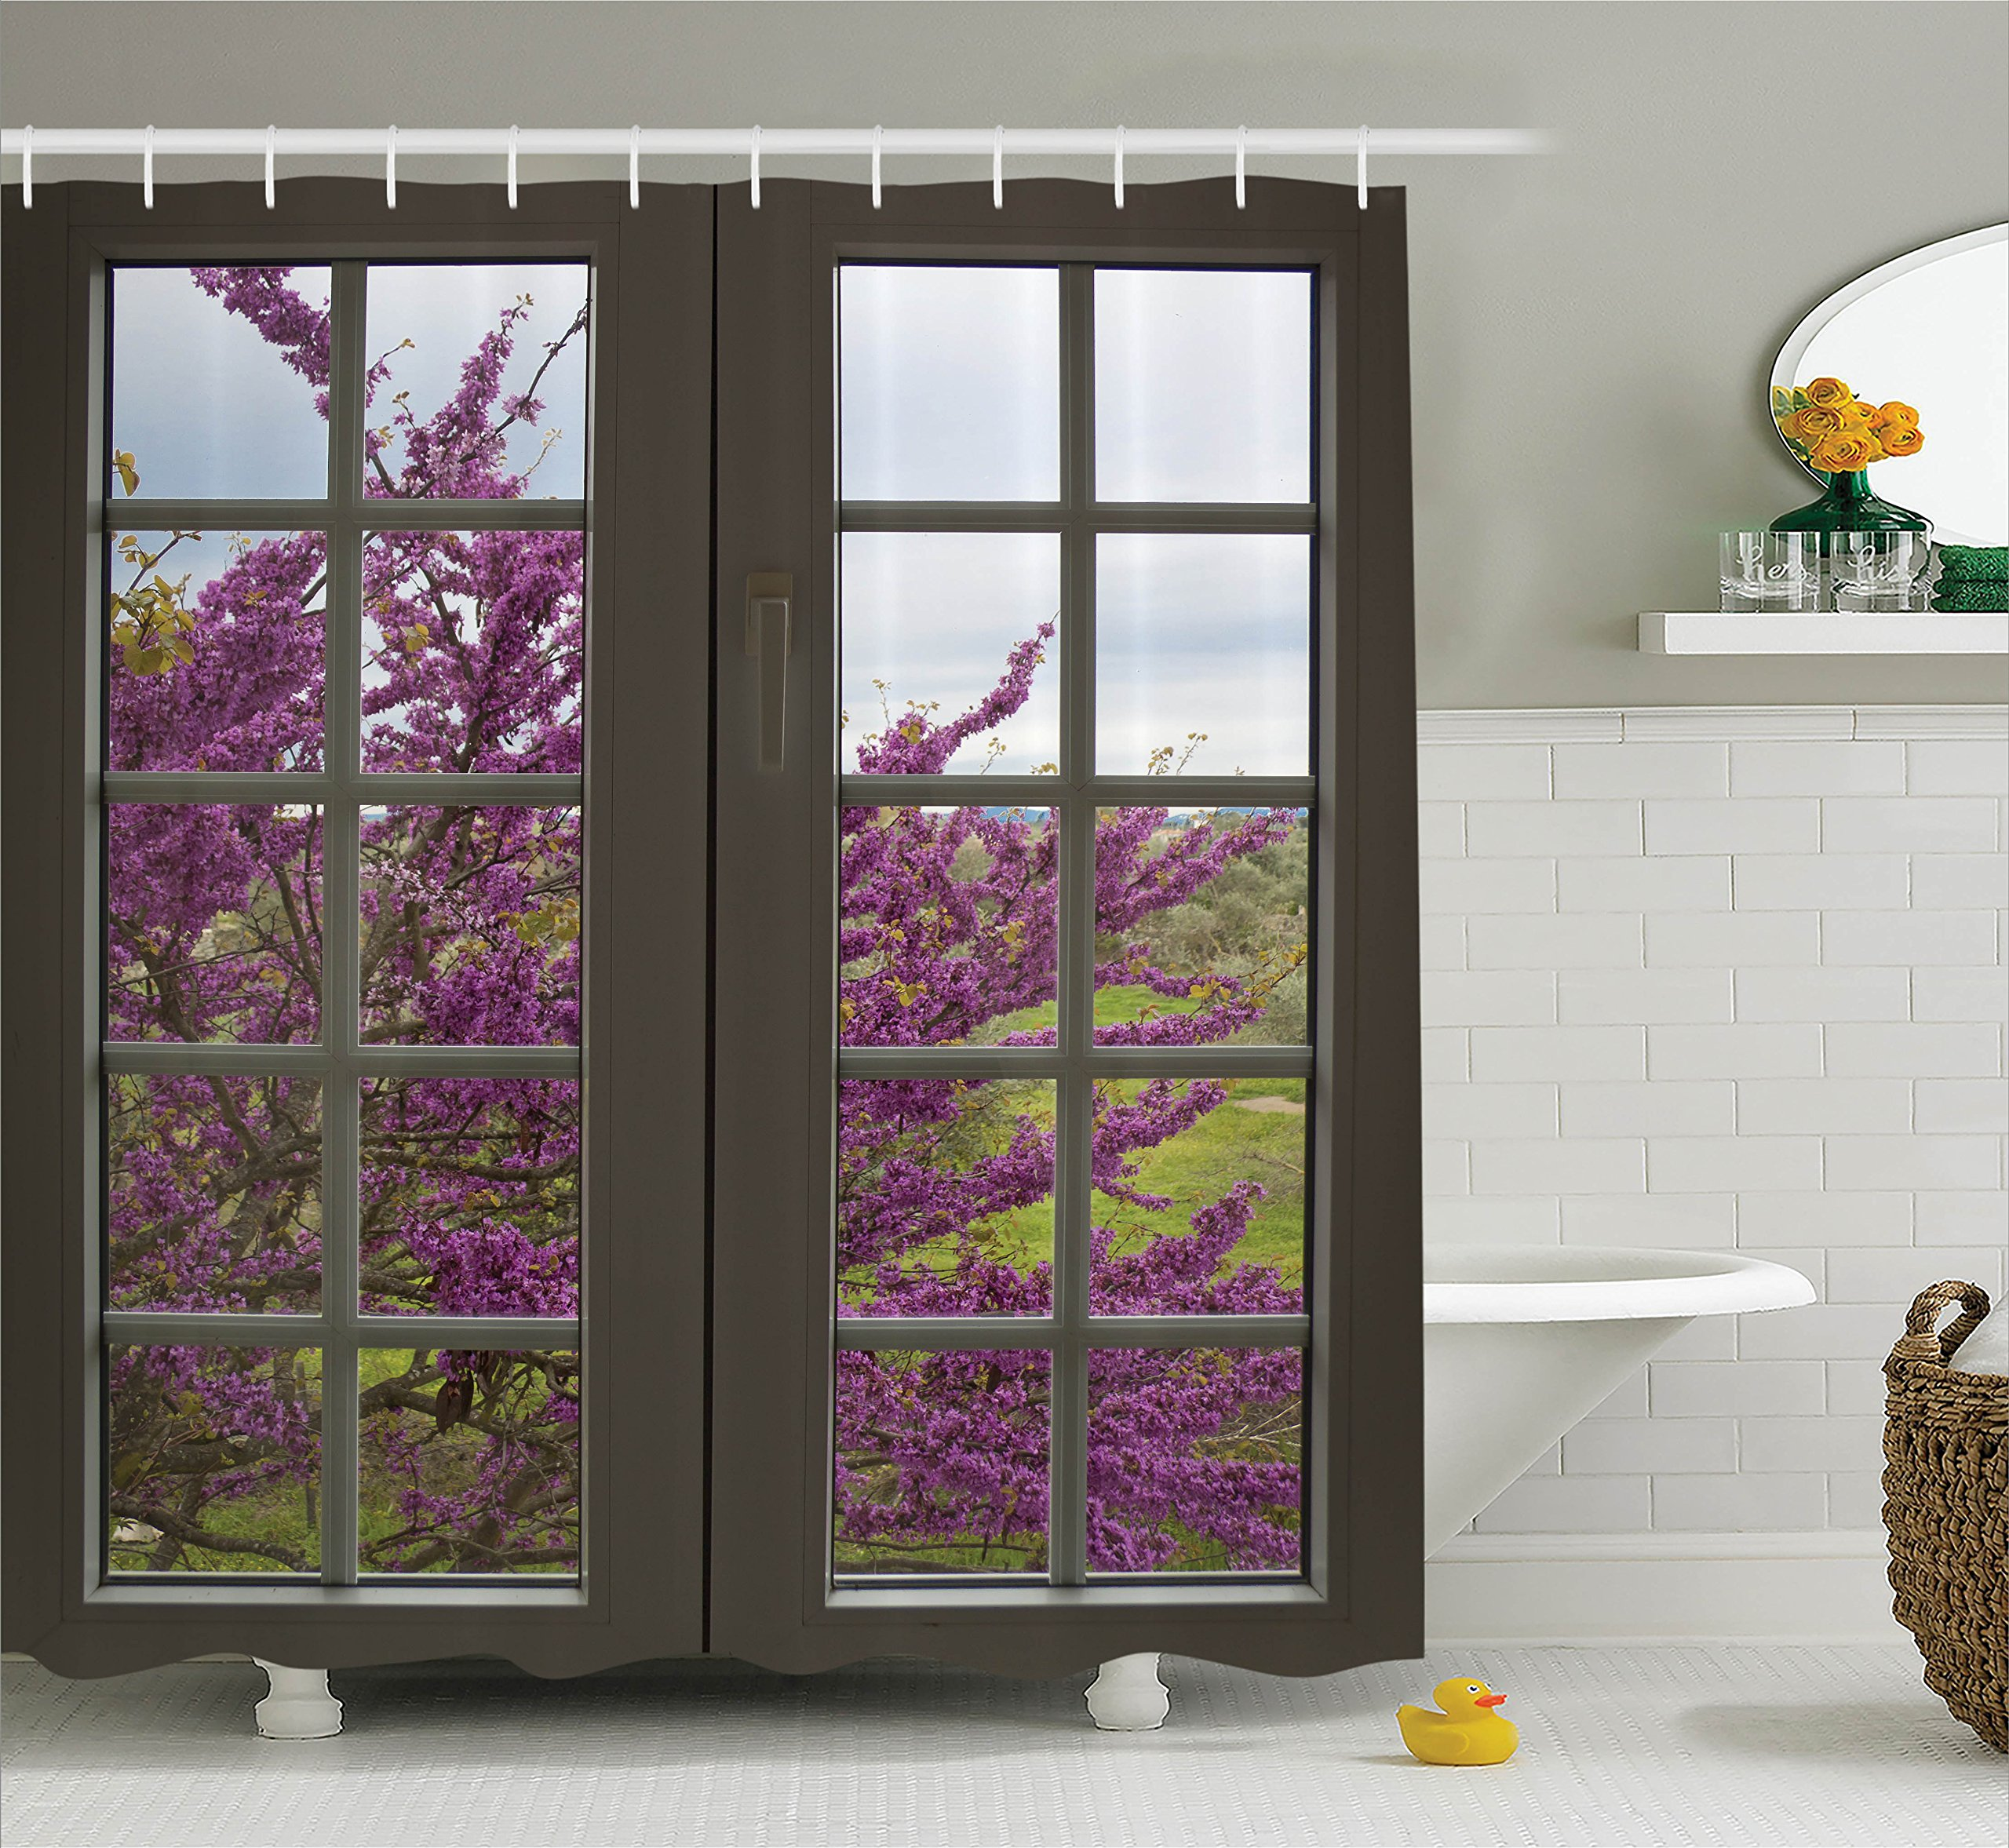 Ambesonne House Decor Collection, View Through the Window to the Countryside and Flowers Spring Blooms Branches Image Print, Polyester Fabric Bathroom Shower Curtain, 75 Inches Long, Gray Purple